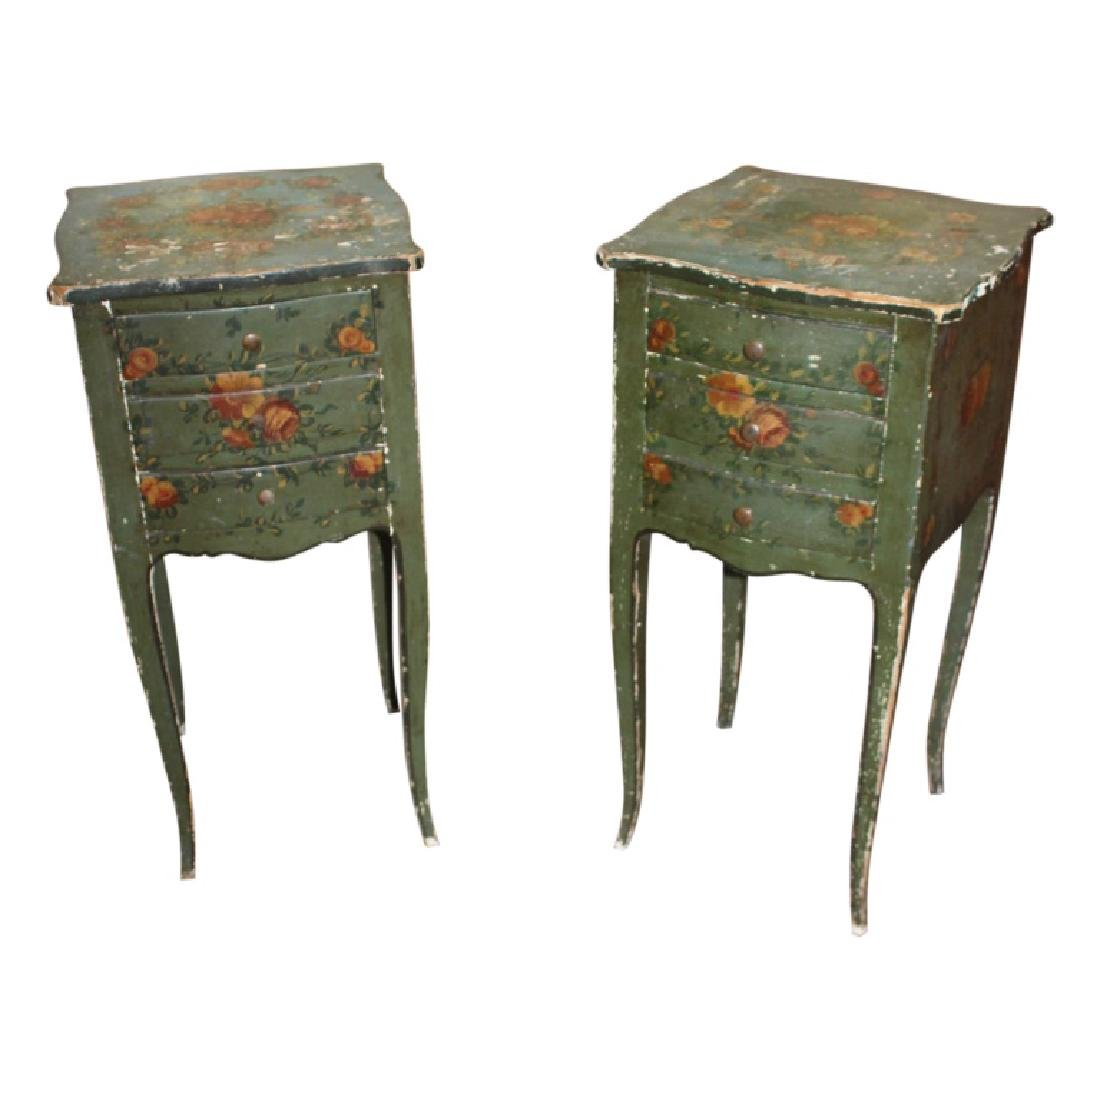 Pair of Antique French Nightstands